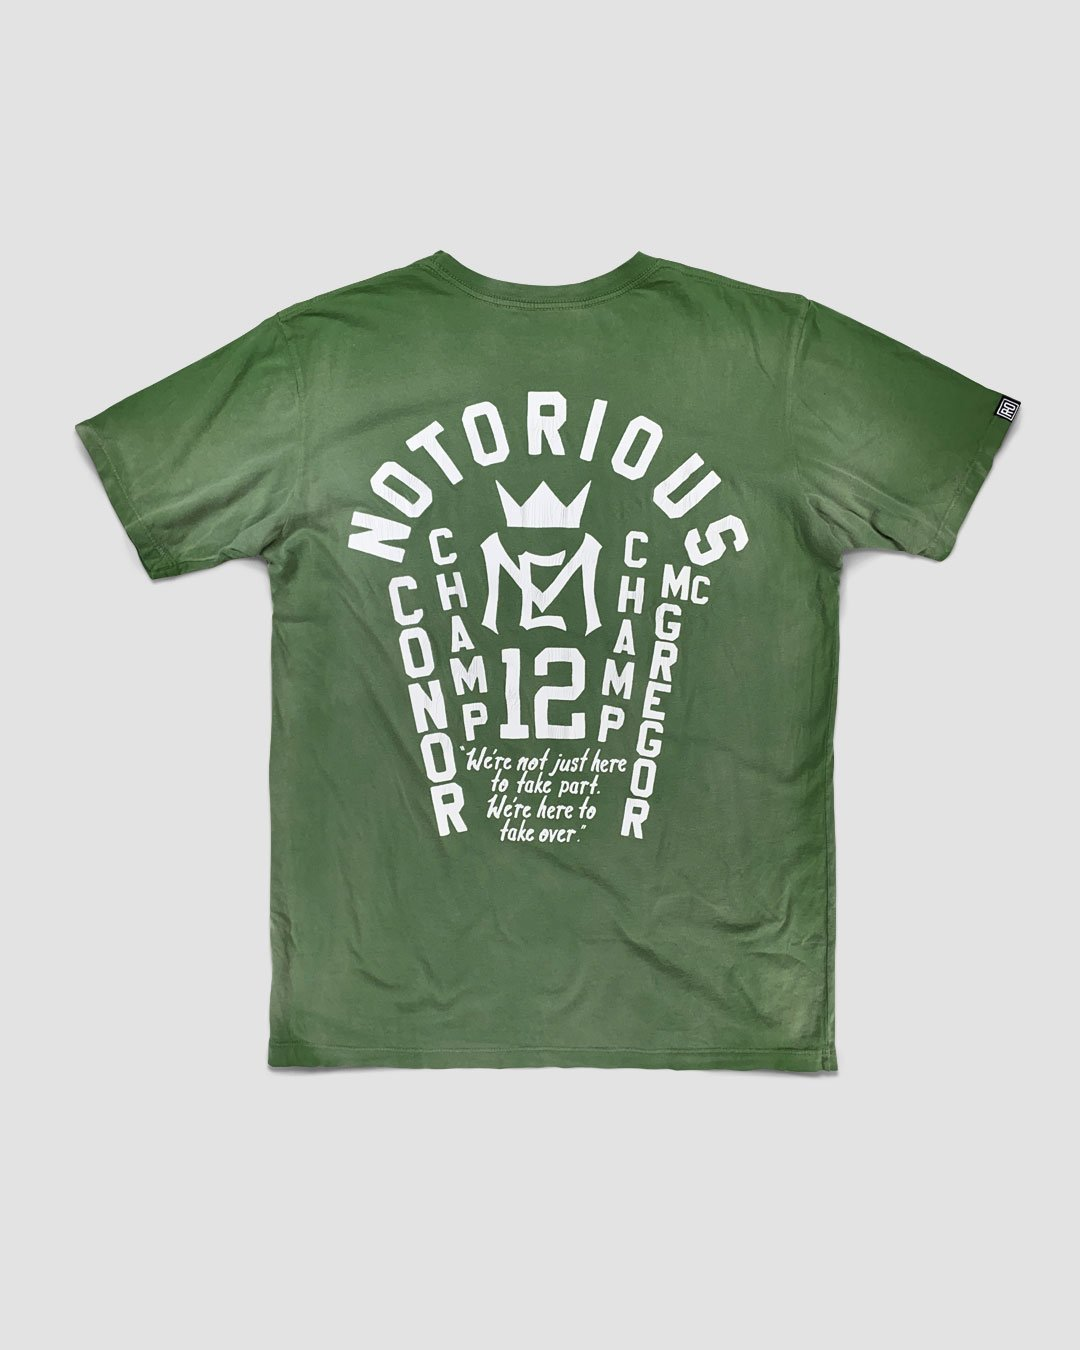 Conor McGregor Notorious Tee - Copasetic Clothing Ltd. dba Roots of Fight